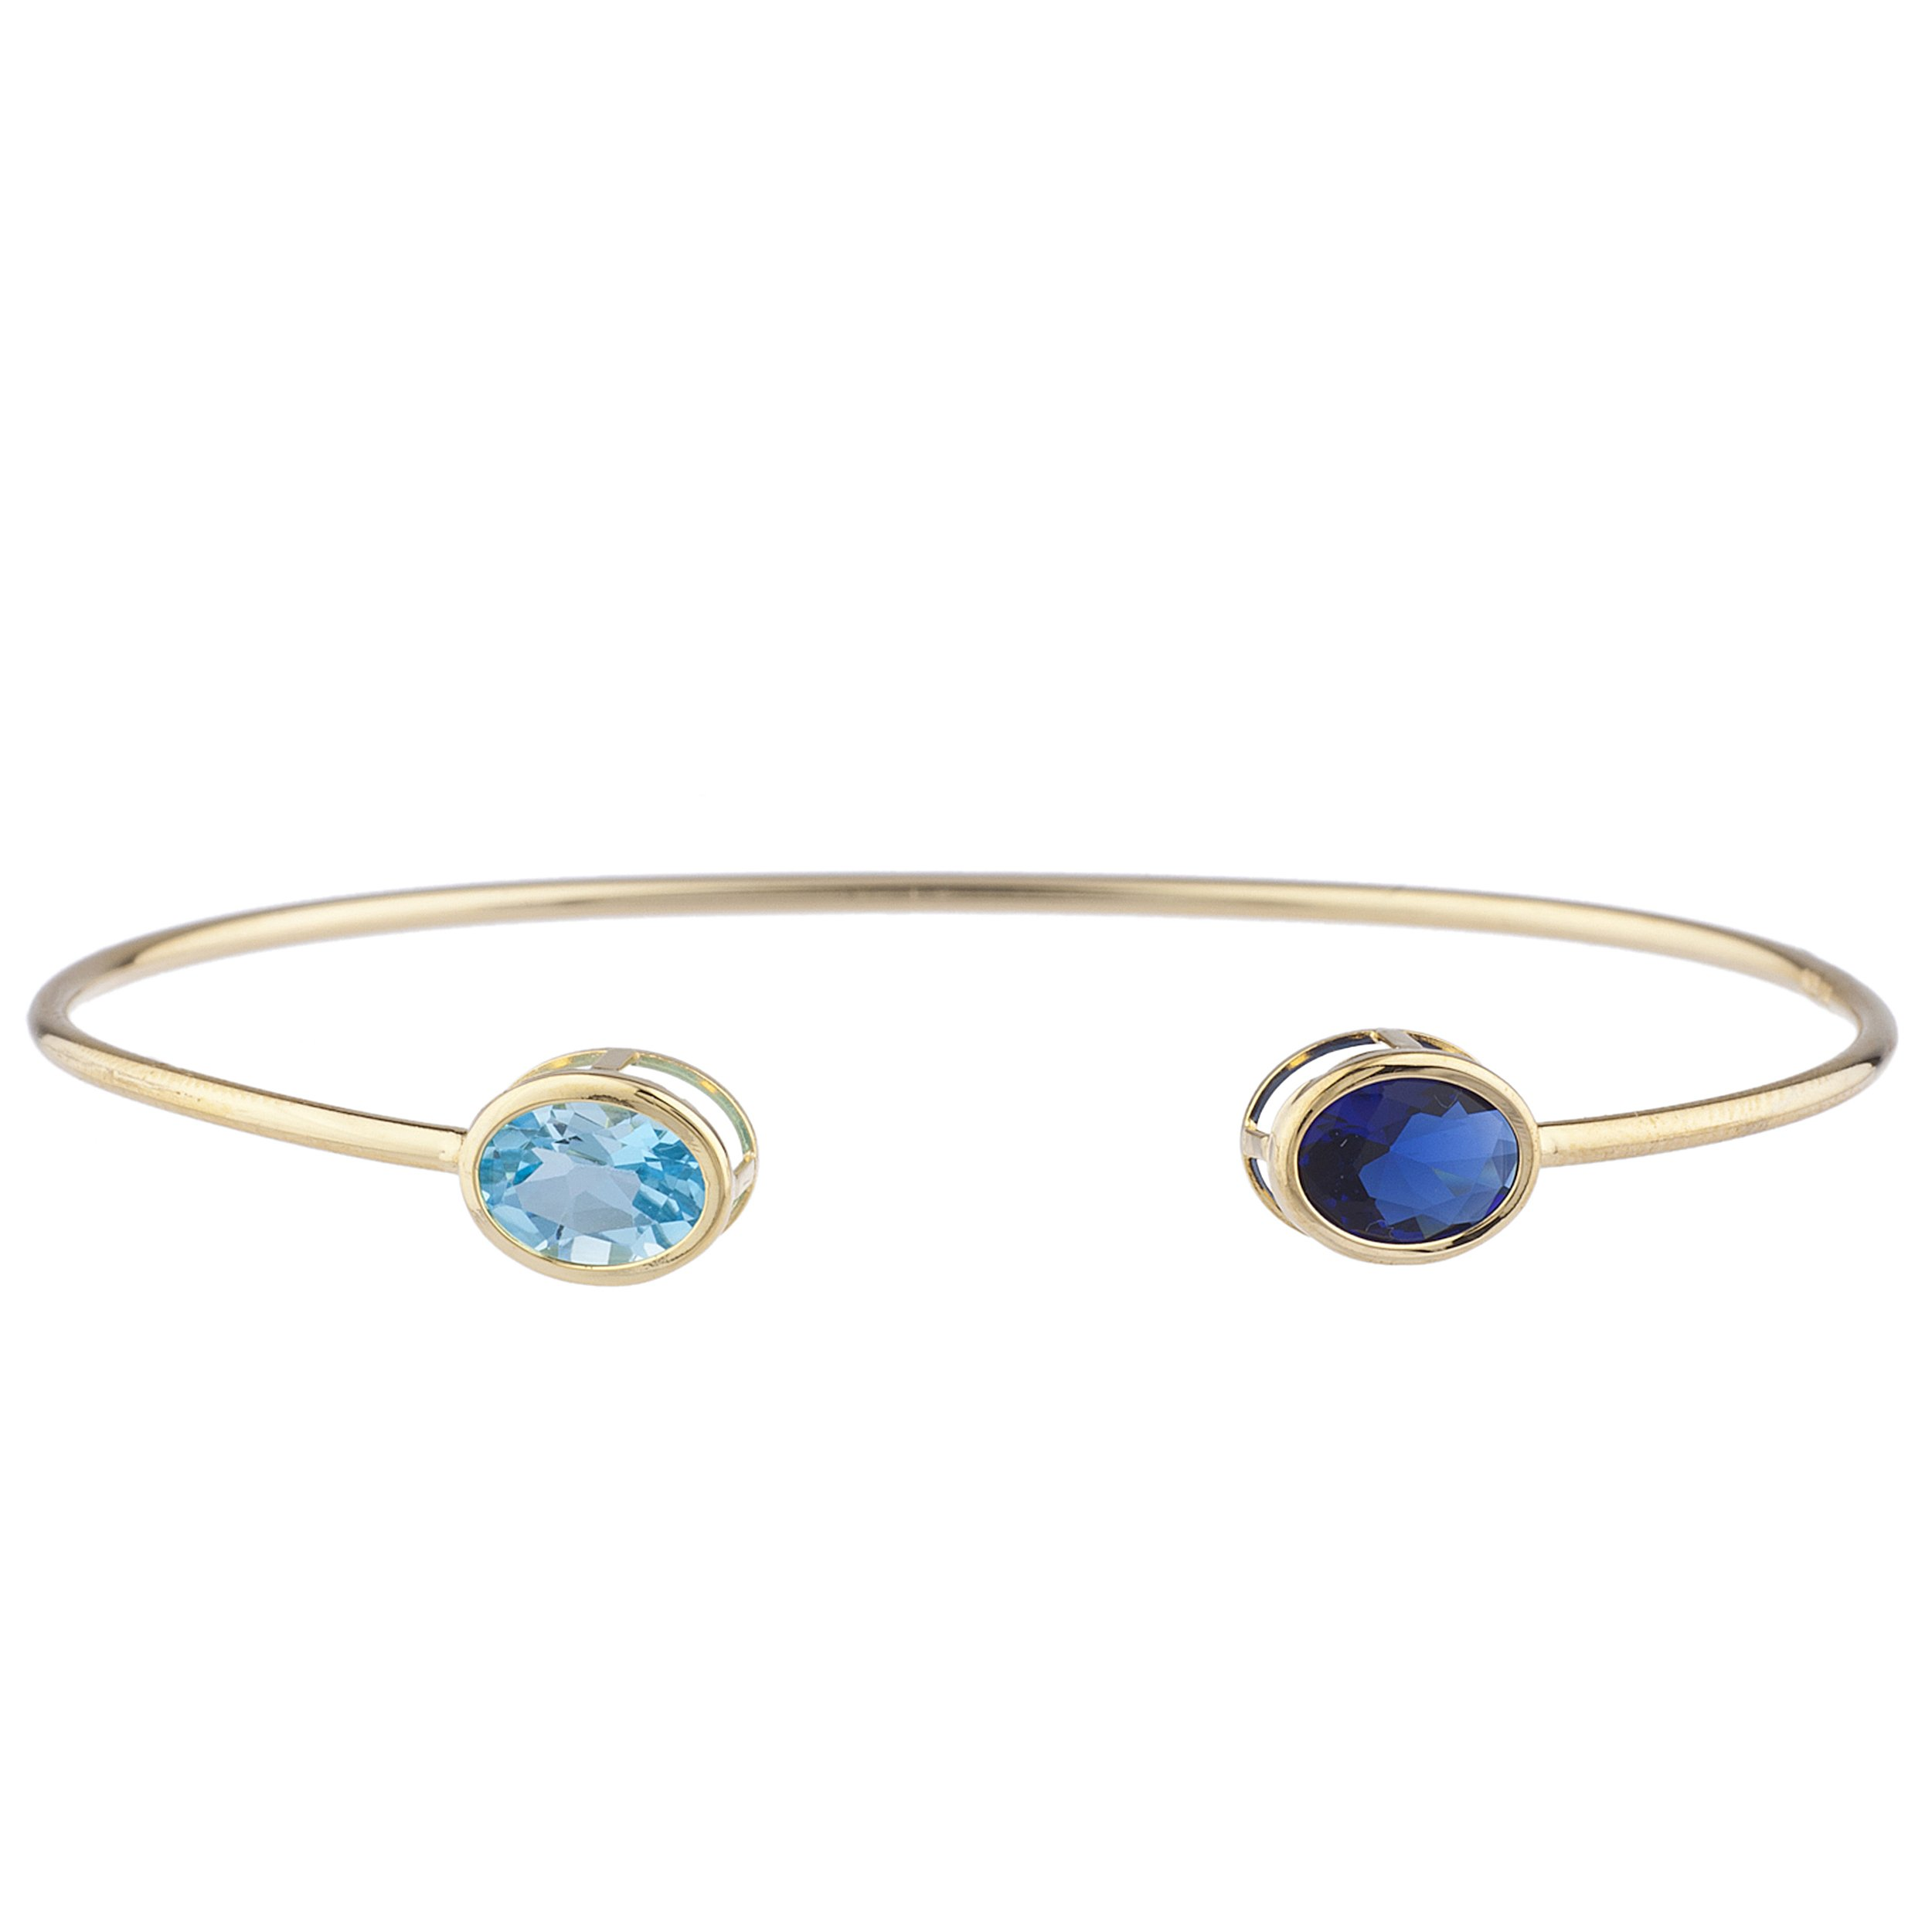 Elizabeth Jewelry Created Blue Sapphire & Simulated Blue Topaz Oval Bezel Bangle Bracelet 14Kt Yellow Gold Plated Over .925 Sterling Silver by Elizabeth Jewelry